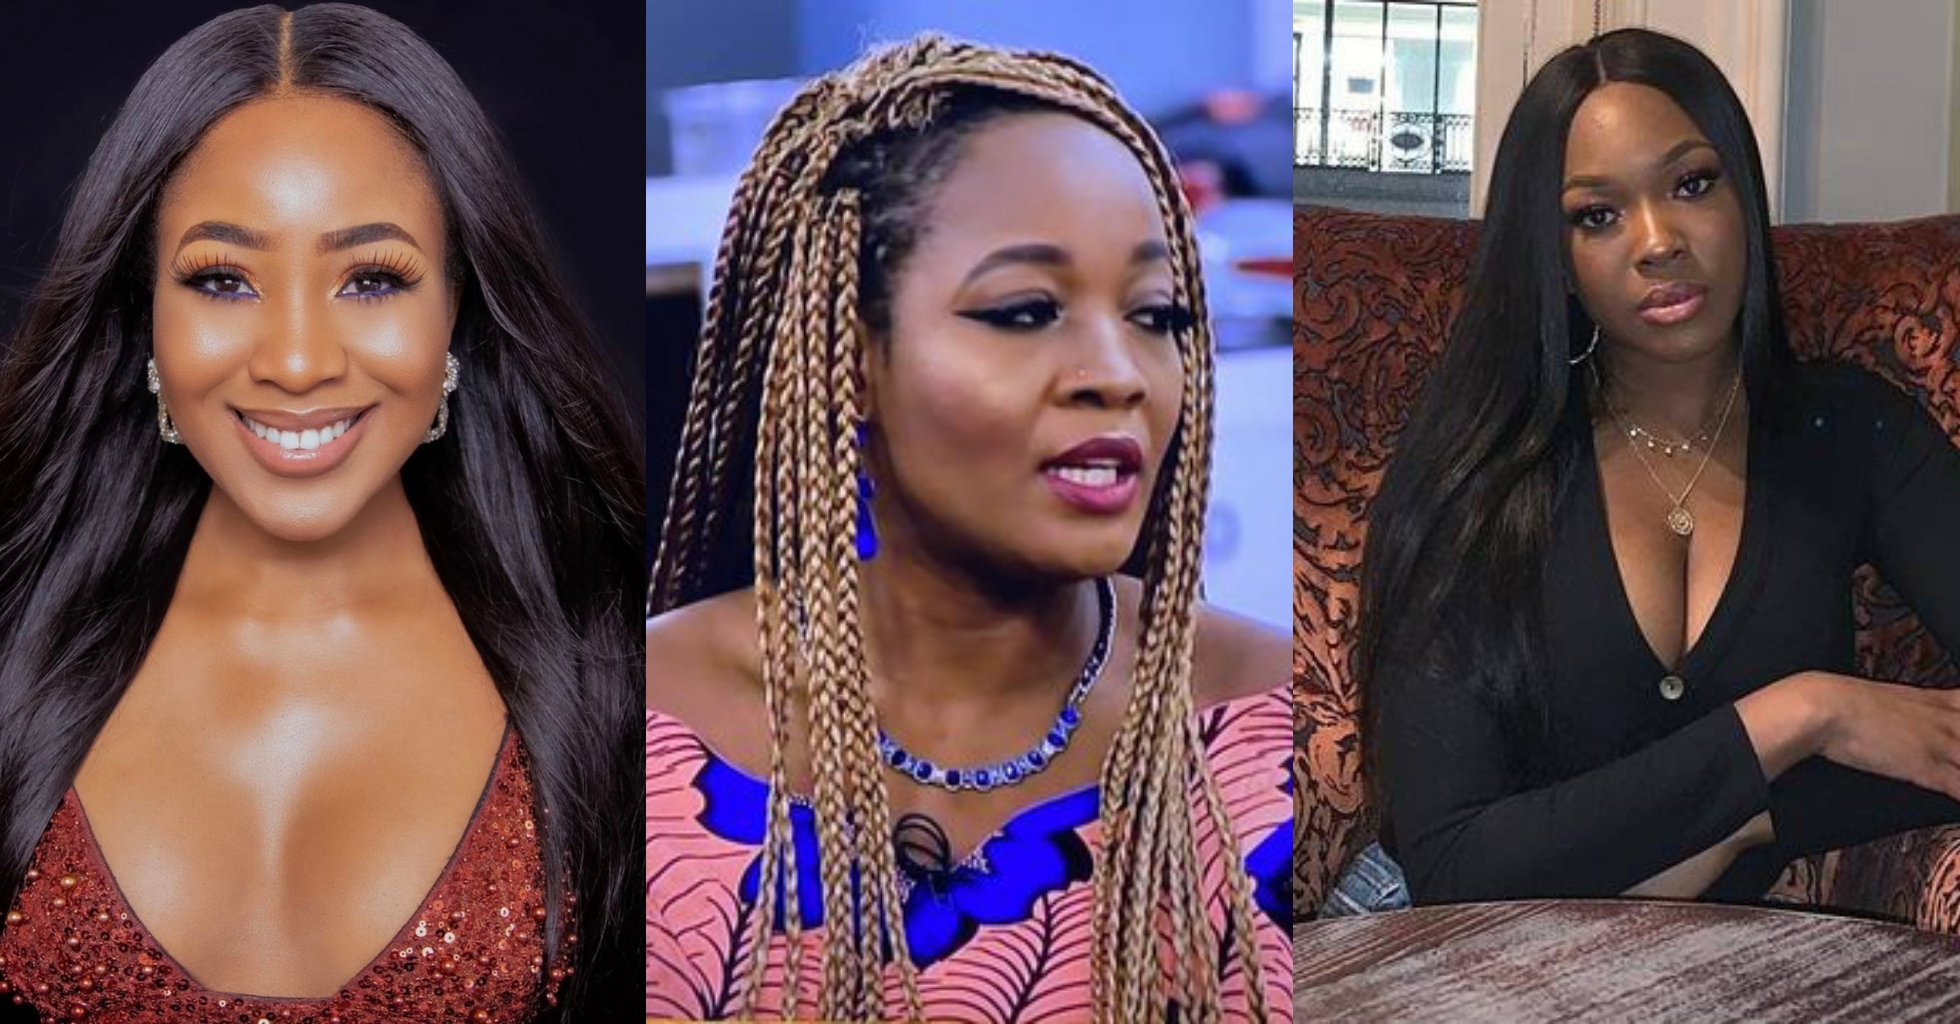 #BBNaija: Lucy And Vee Are Trying To Get Me Disqualified - Erica